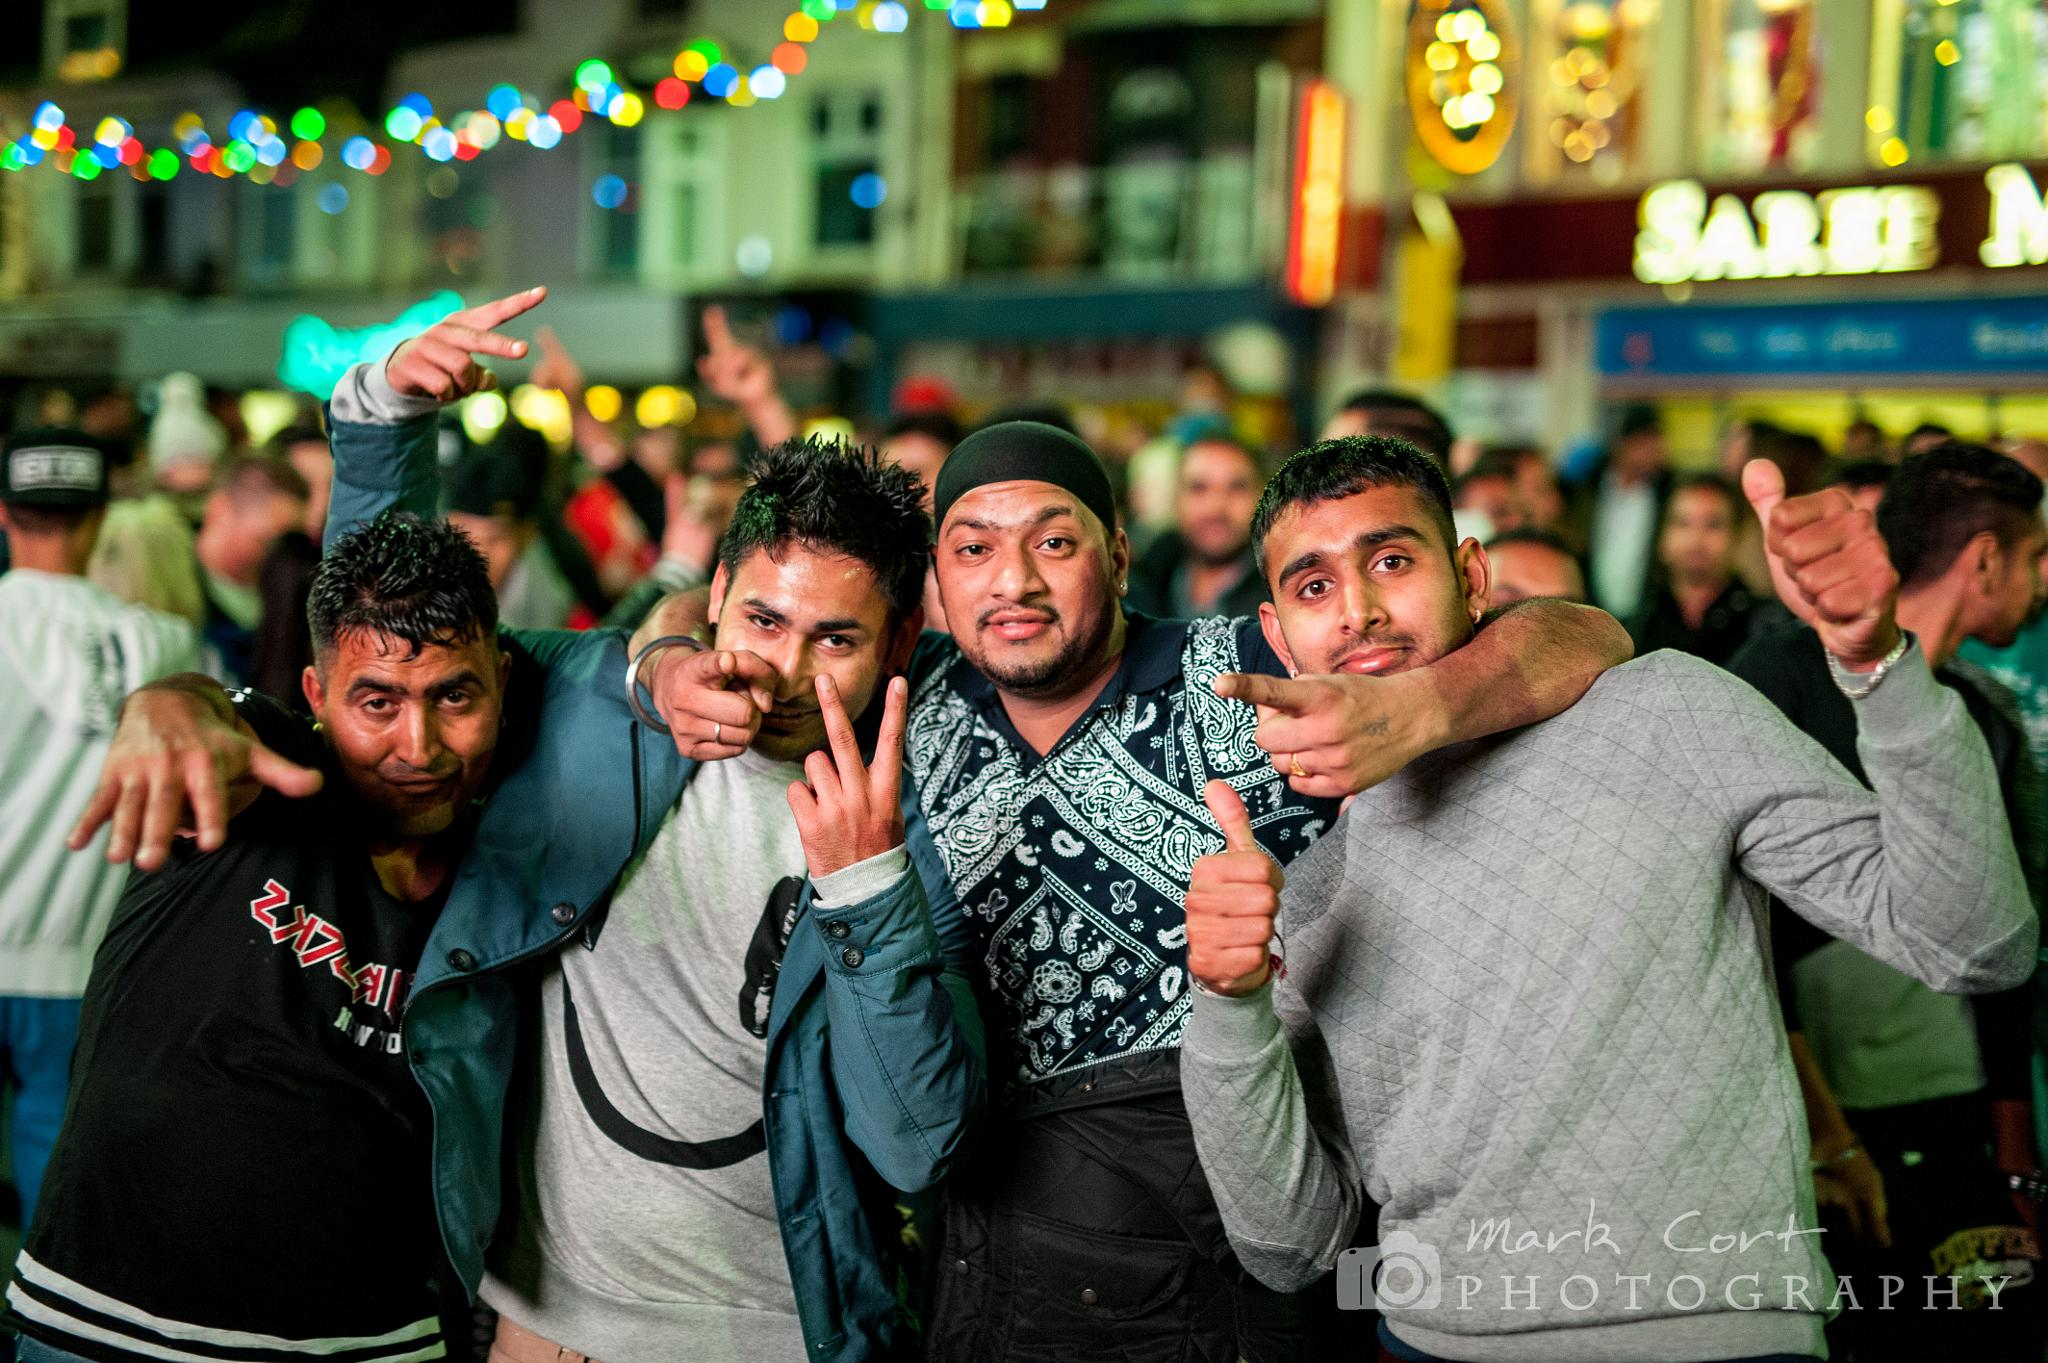 Leicester Diwali 2014 by Mark Cort